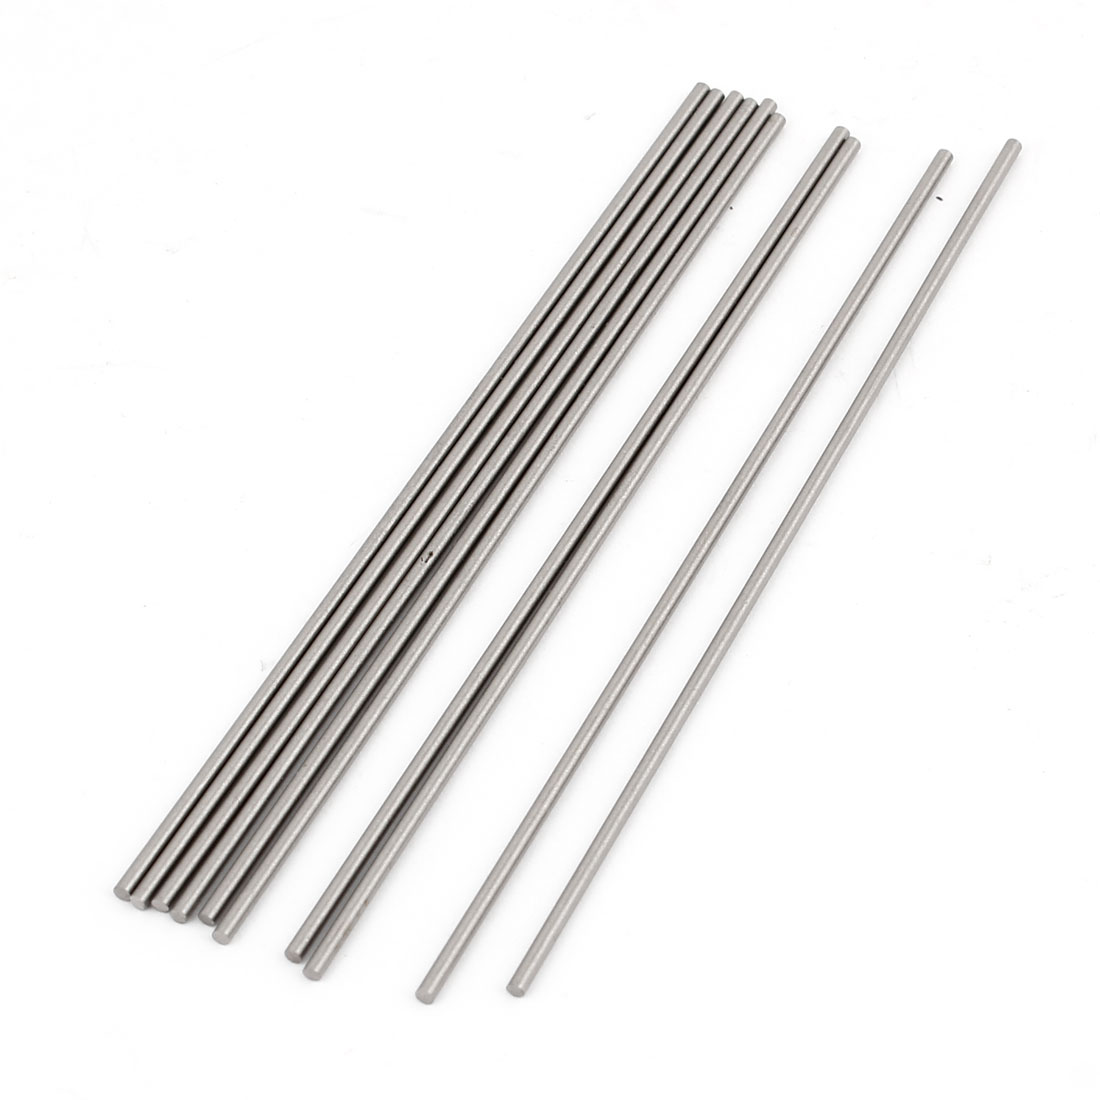 10 Pcs 1.5mm x 100mm HSS High Speed Steel Turning Bars for CNC Lathe